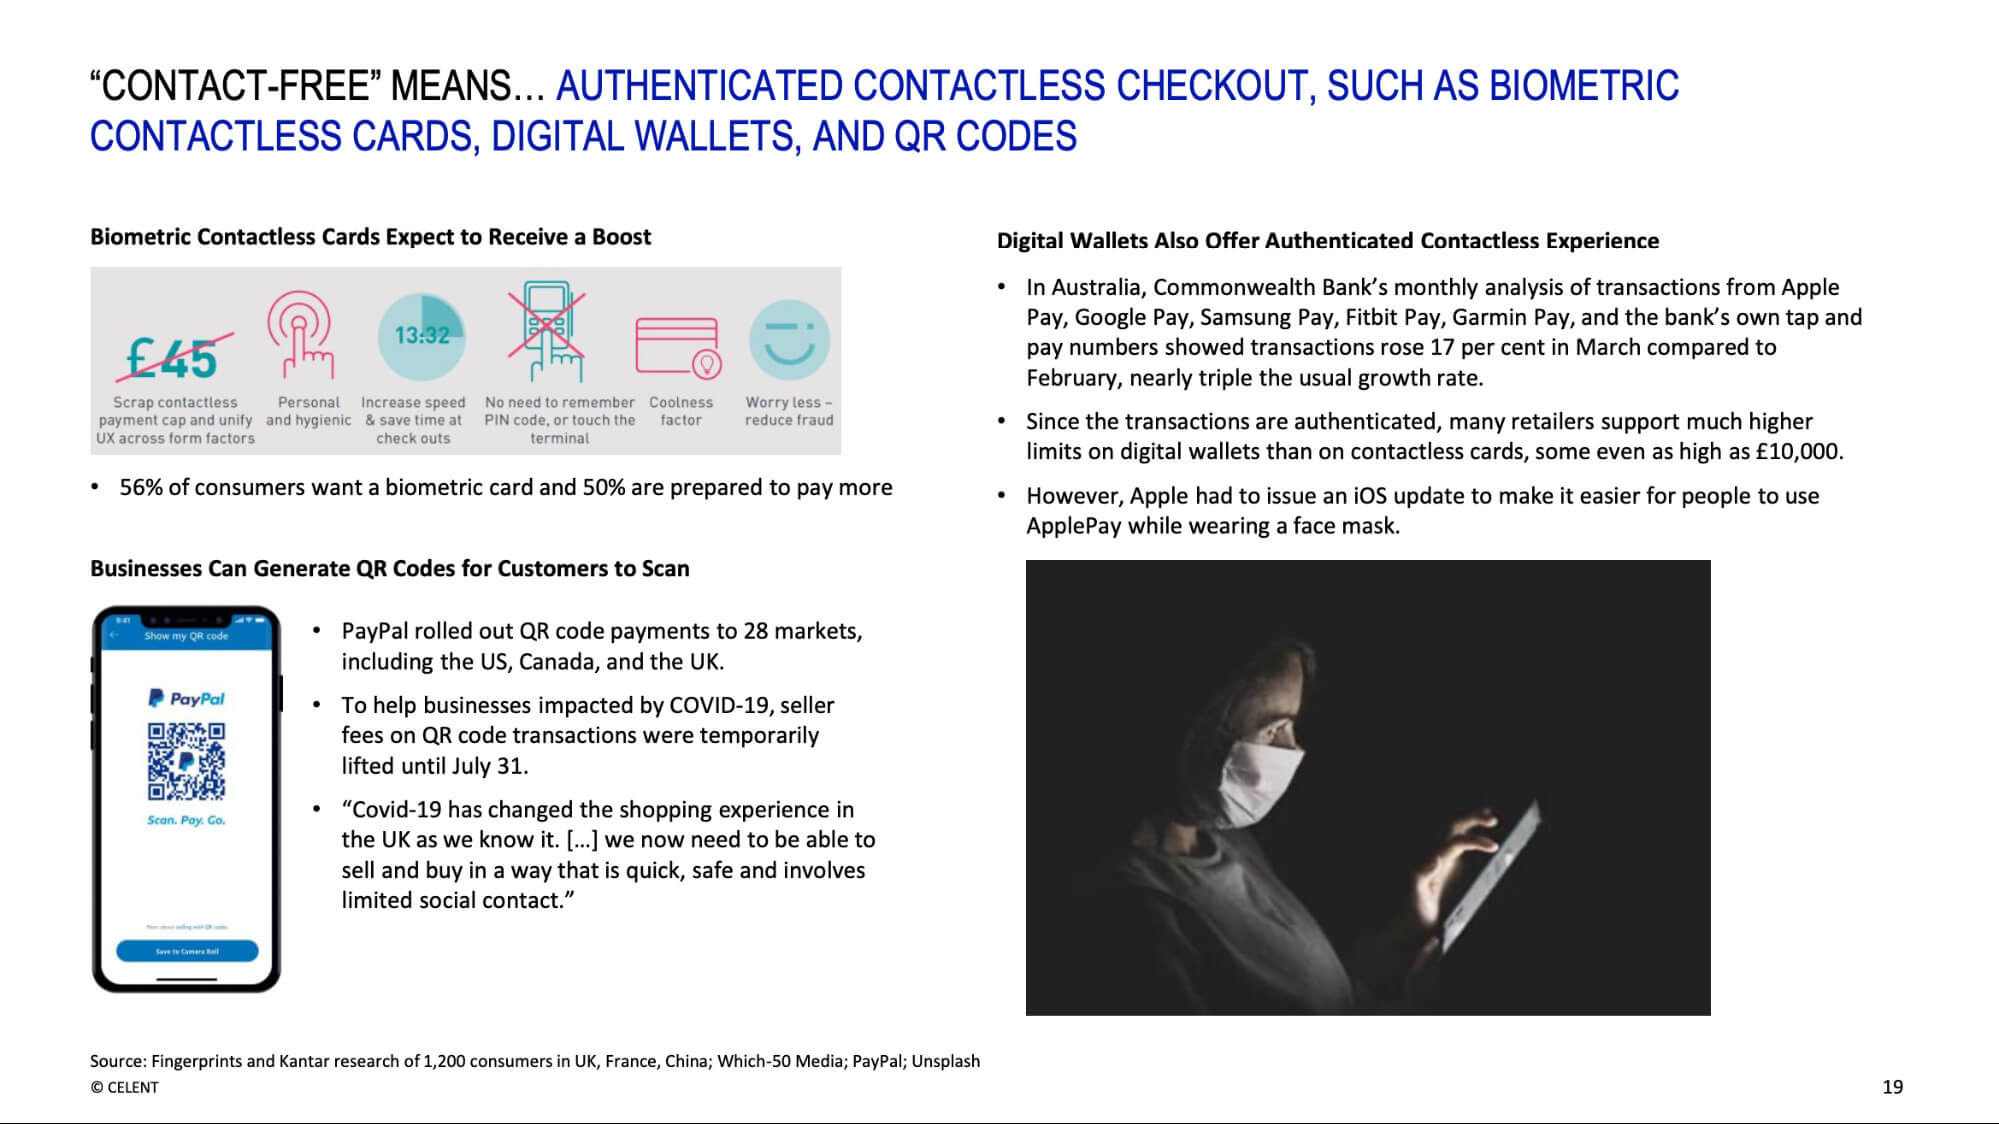 Contact-free means.. Authenticated contactless checkout, such as biometric contactless cards, digital wallets and QR codes